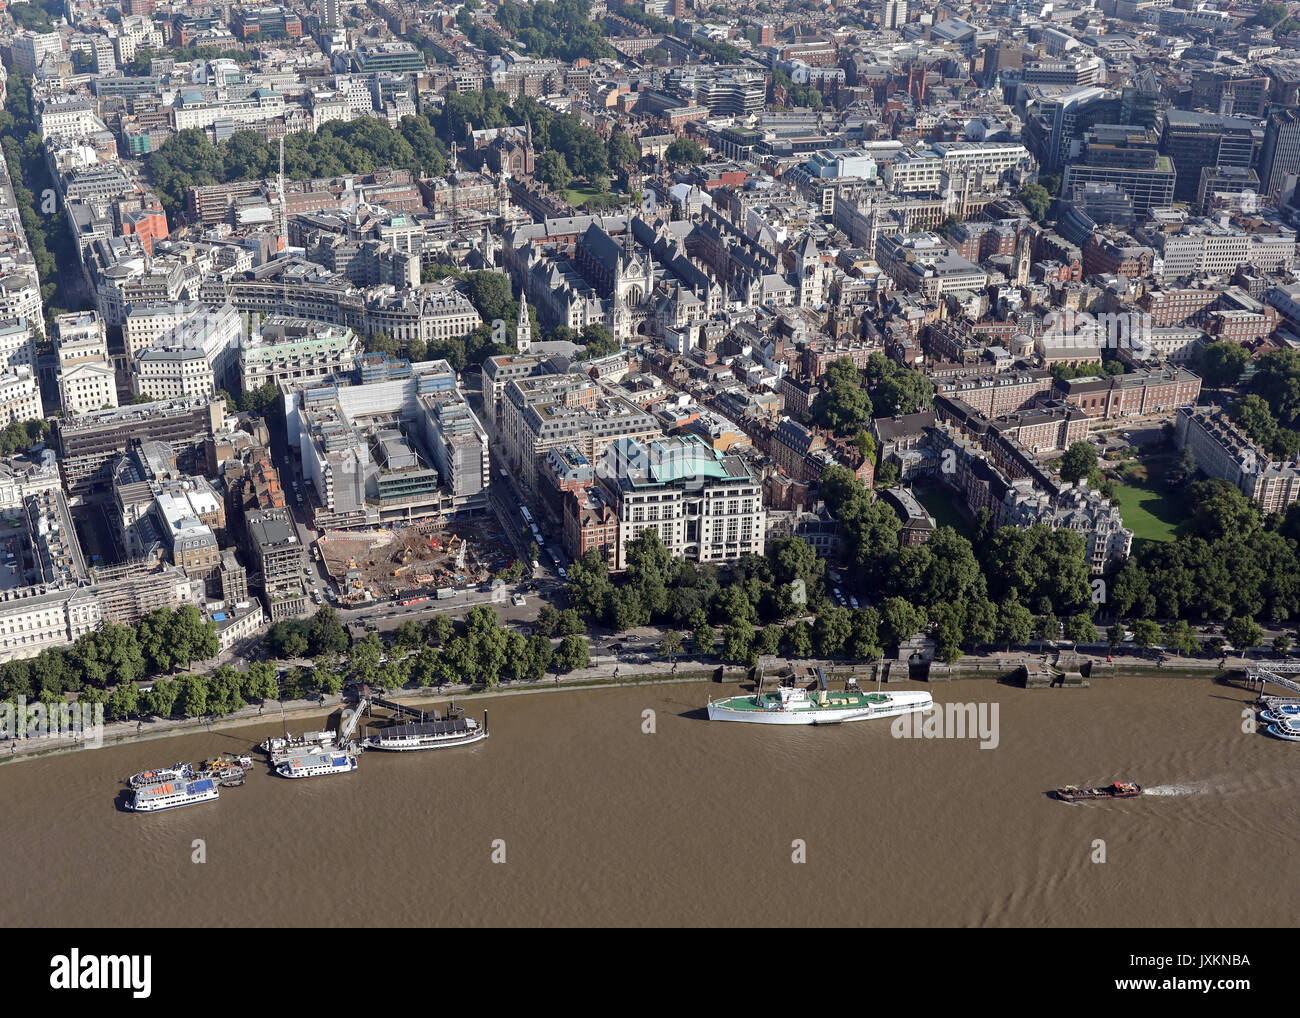 aerial view of the Victoria Embankment & Strand, London, UK - Stock Image